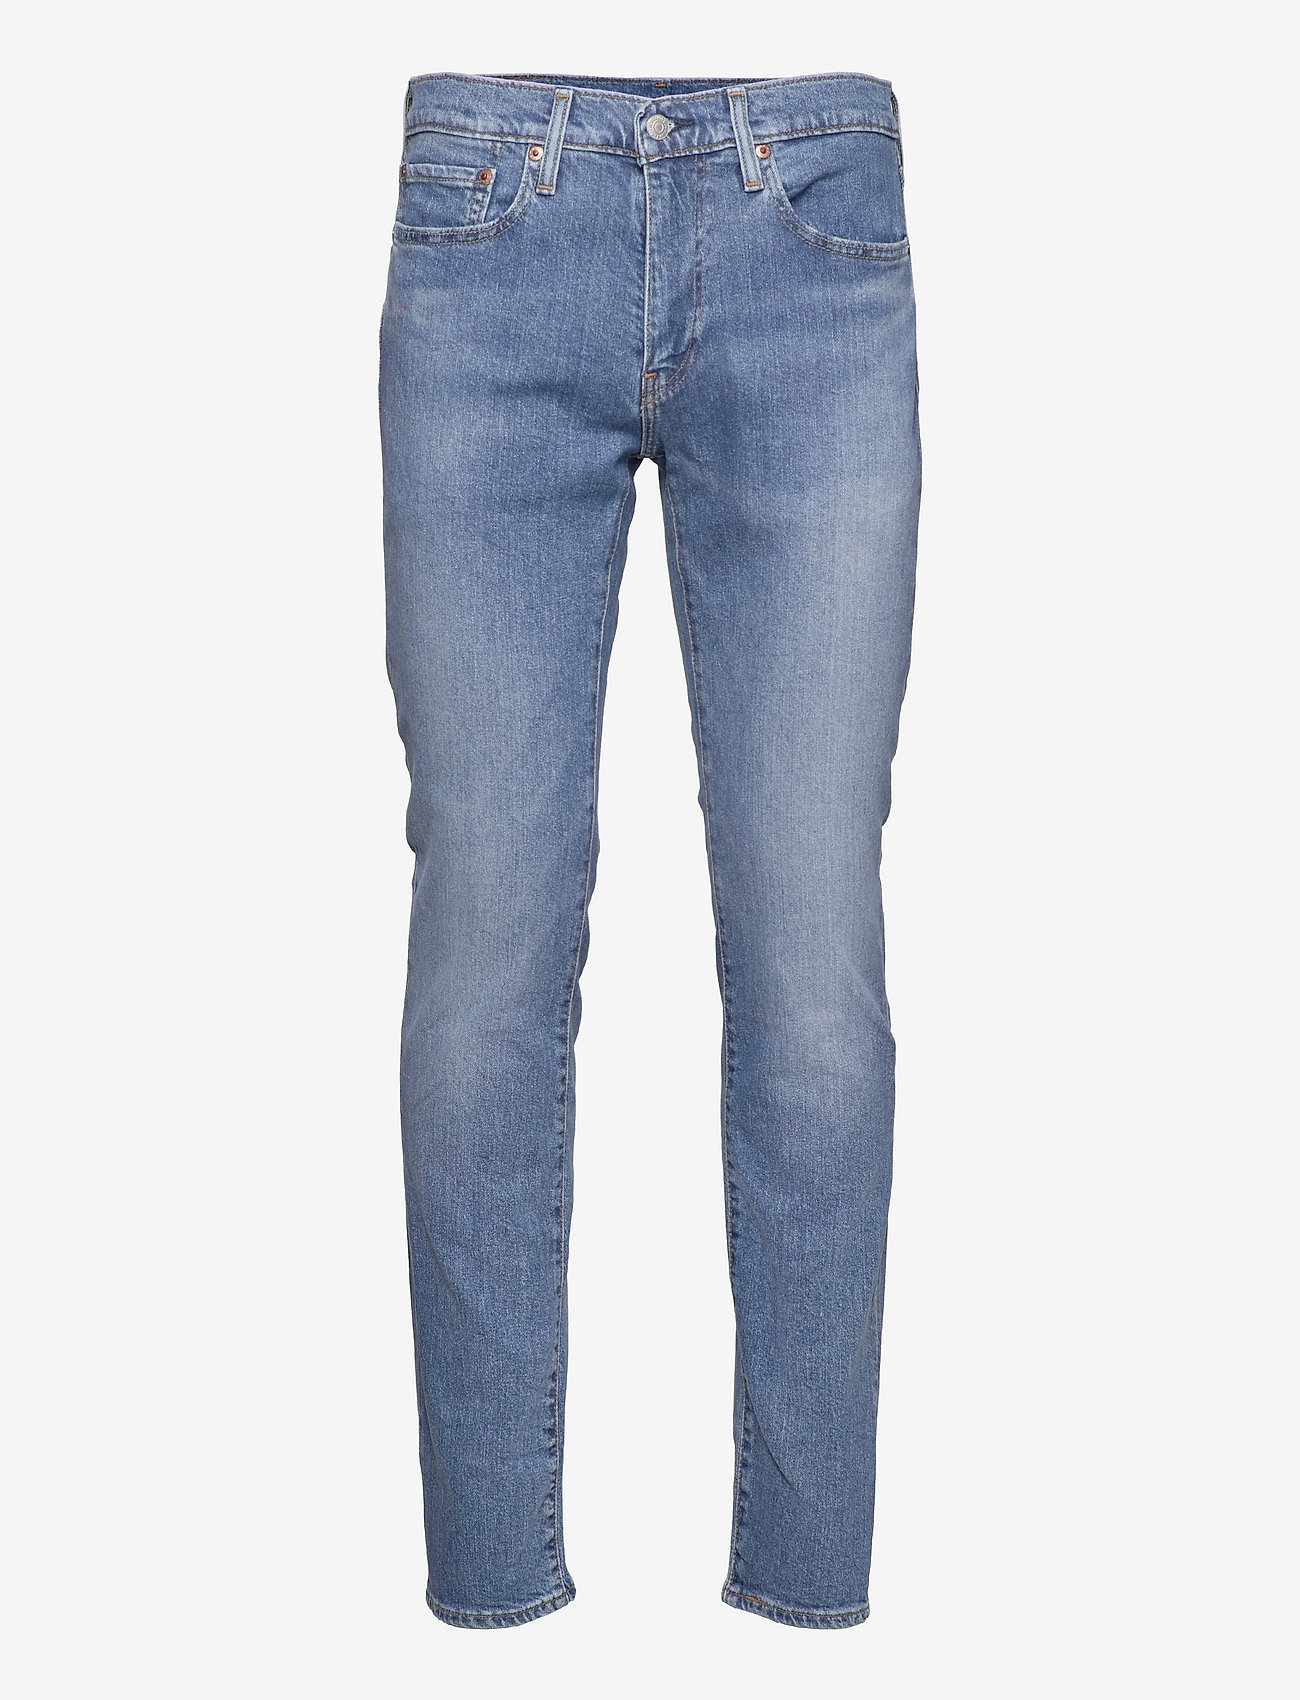 LEVI´S Men - 511 SLIM CORFU GOT FRIENDS ADV - slim jeans - med indigo - flat finish - 0